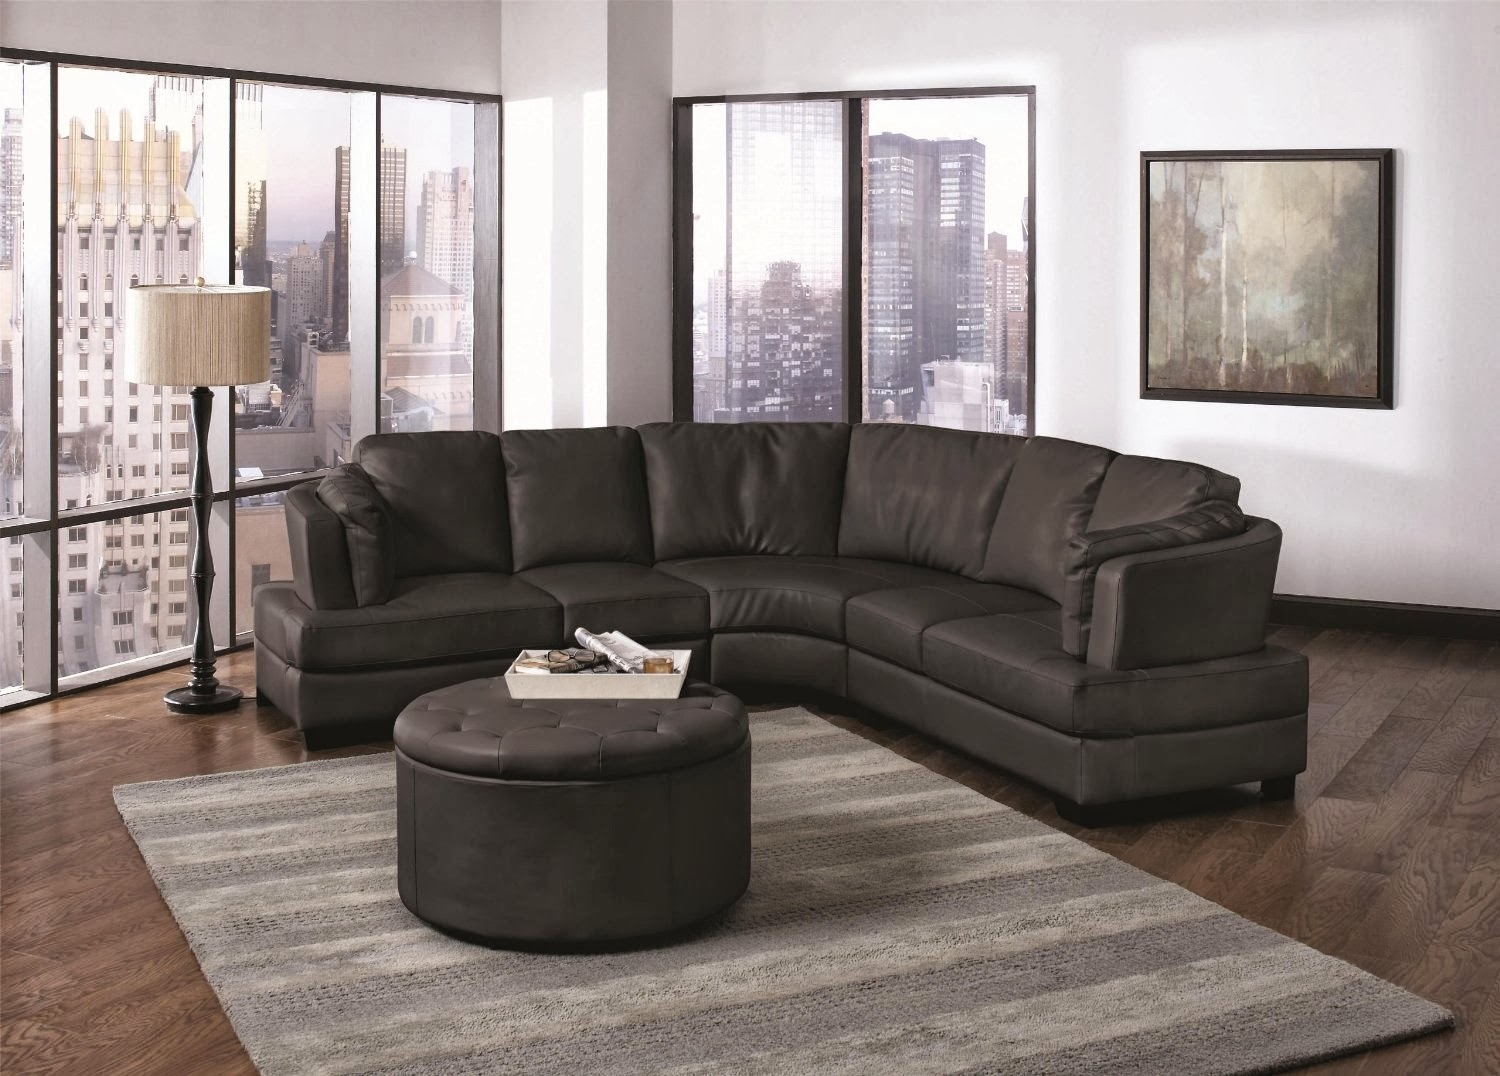 Furniture Alluring Unique Curved Couches With Classic Design Home For Curved Sectional Sofa With Recliner (Image 7 of 15)